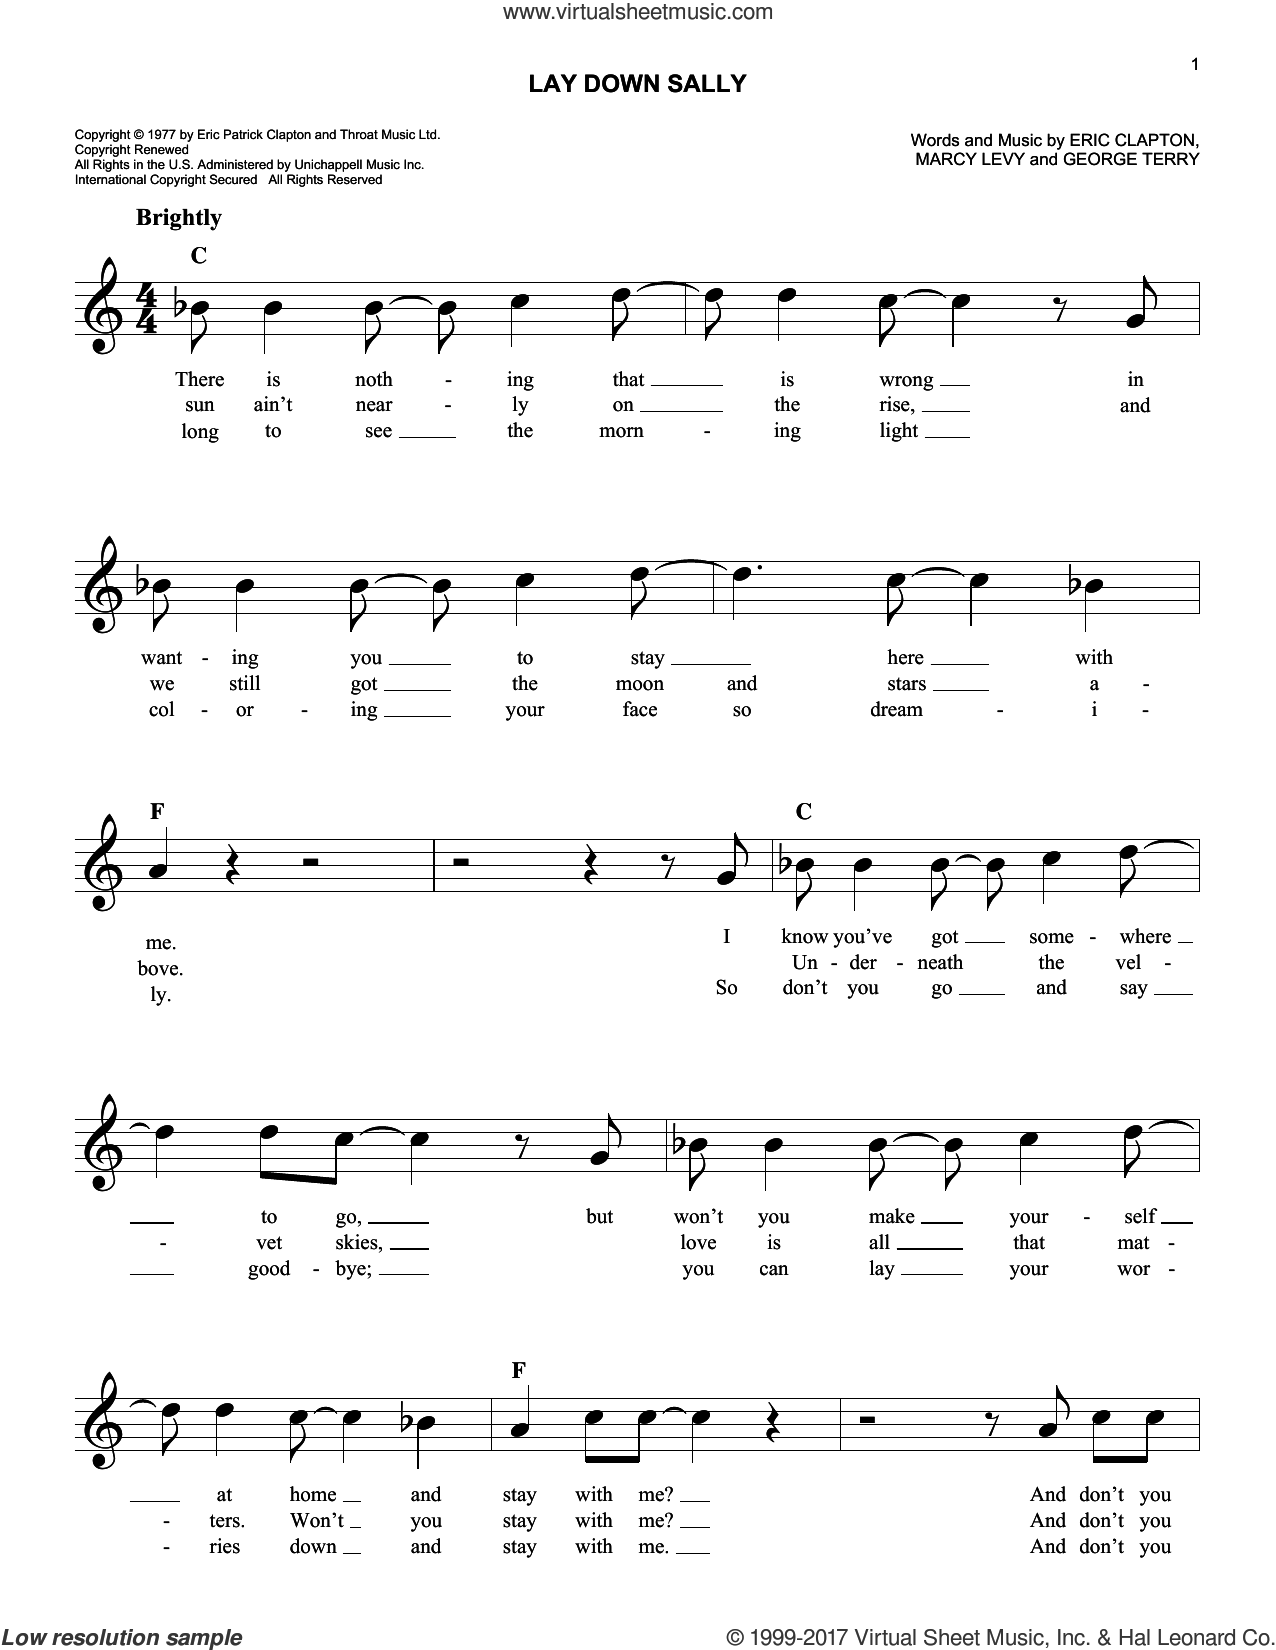 Lay Down Sally sheet music for voice and other instruments (fake book) by Eric Clapton, George Terry and Marcy Levy, intermediate skill level